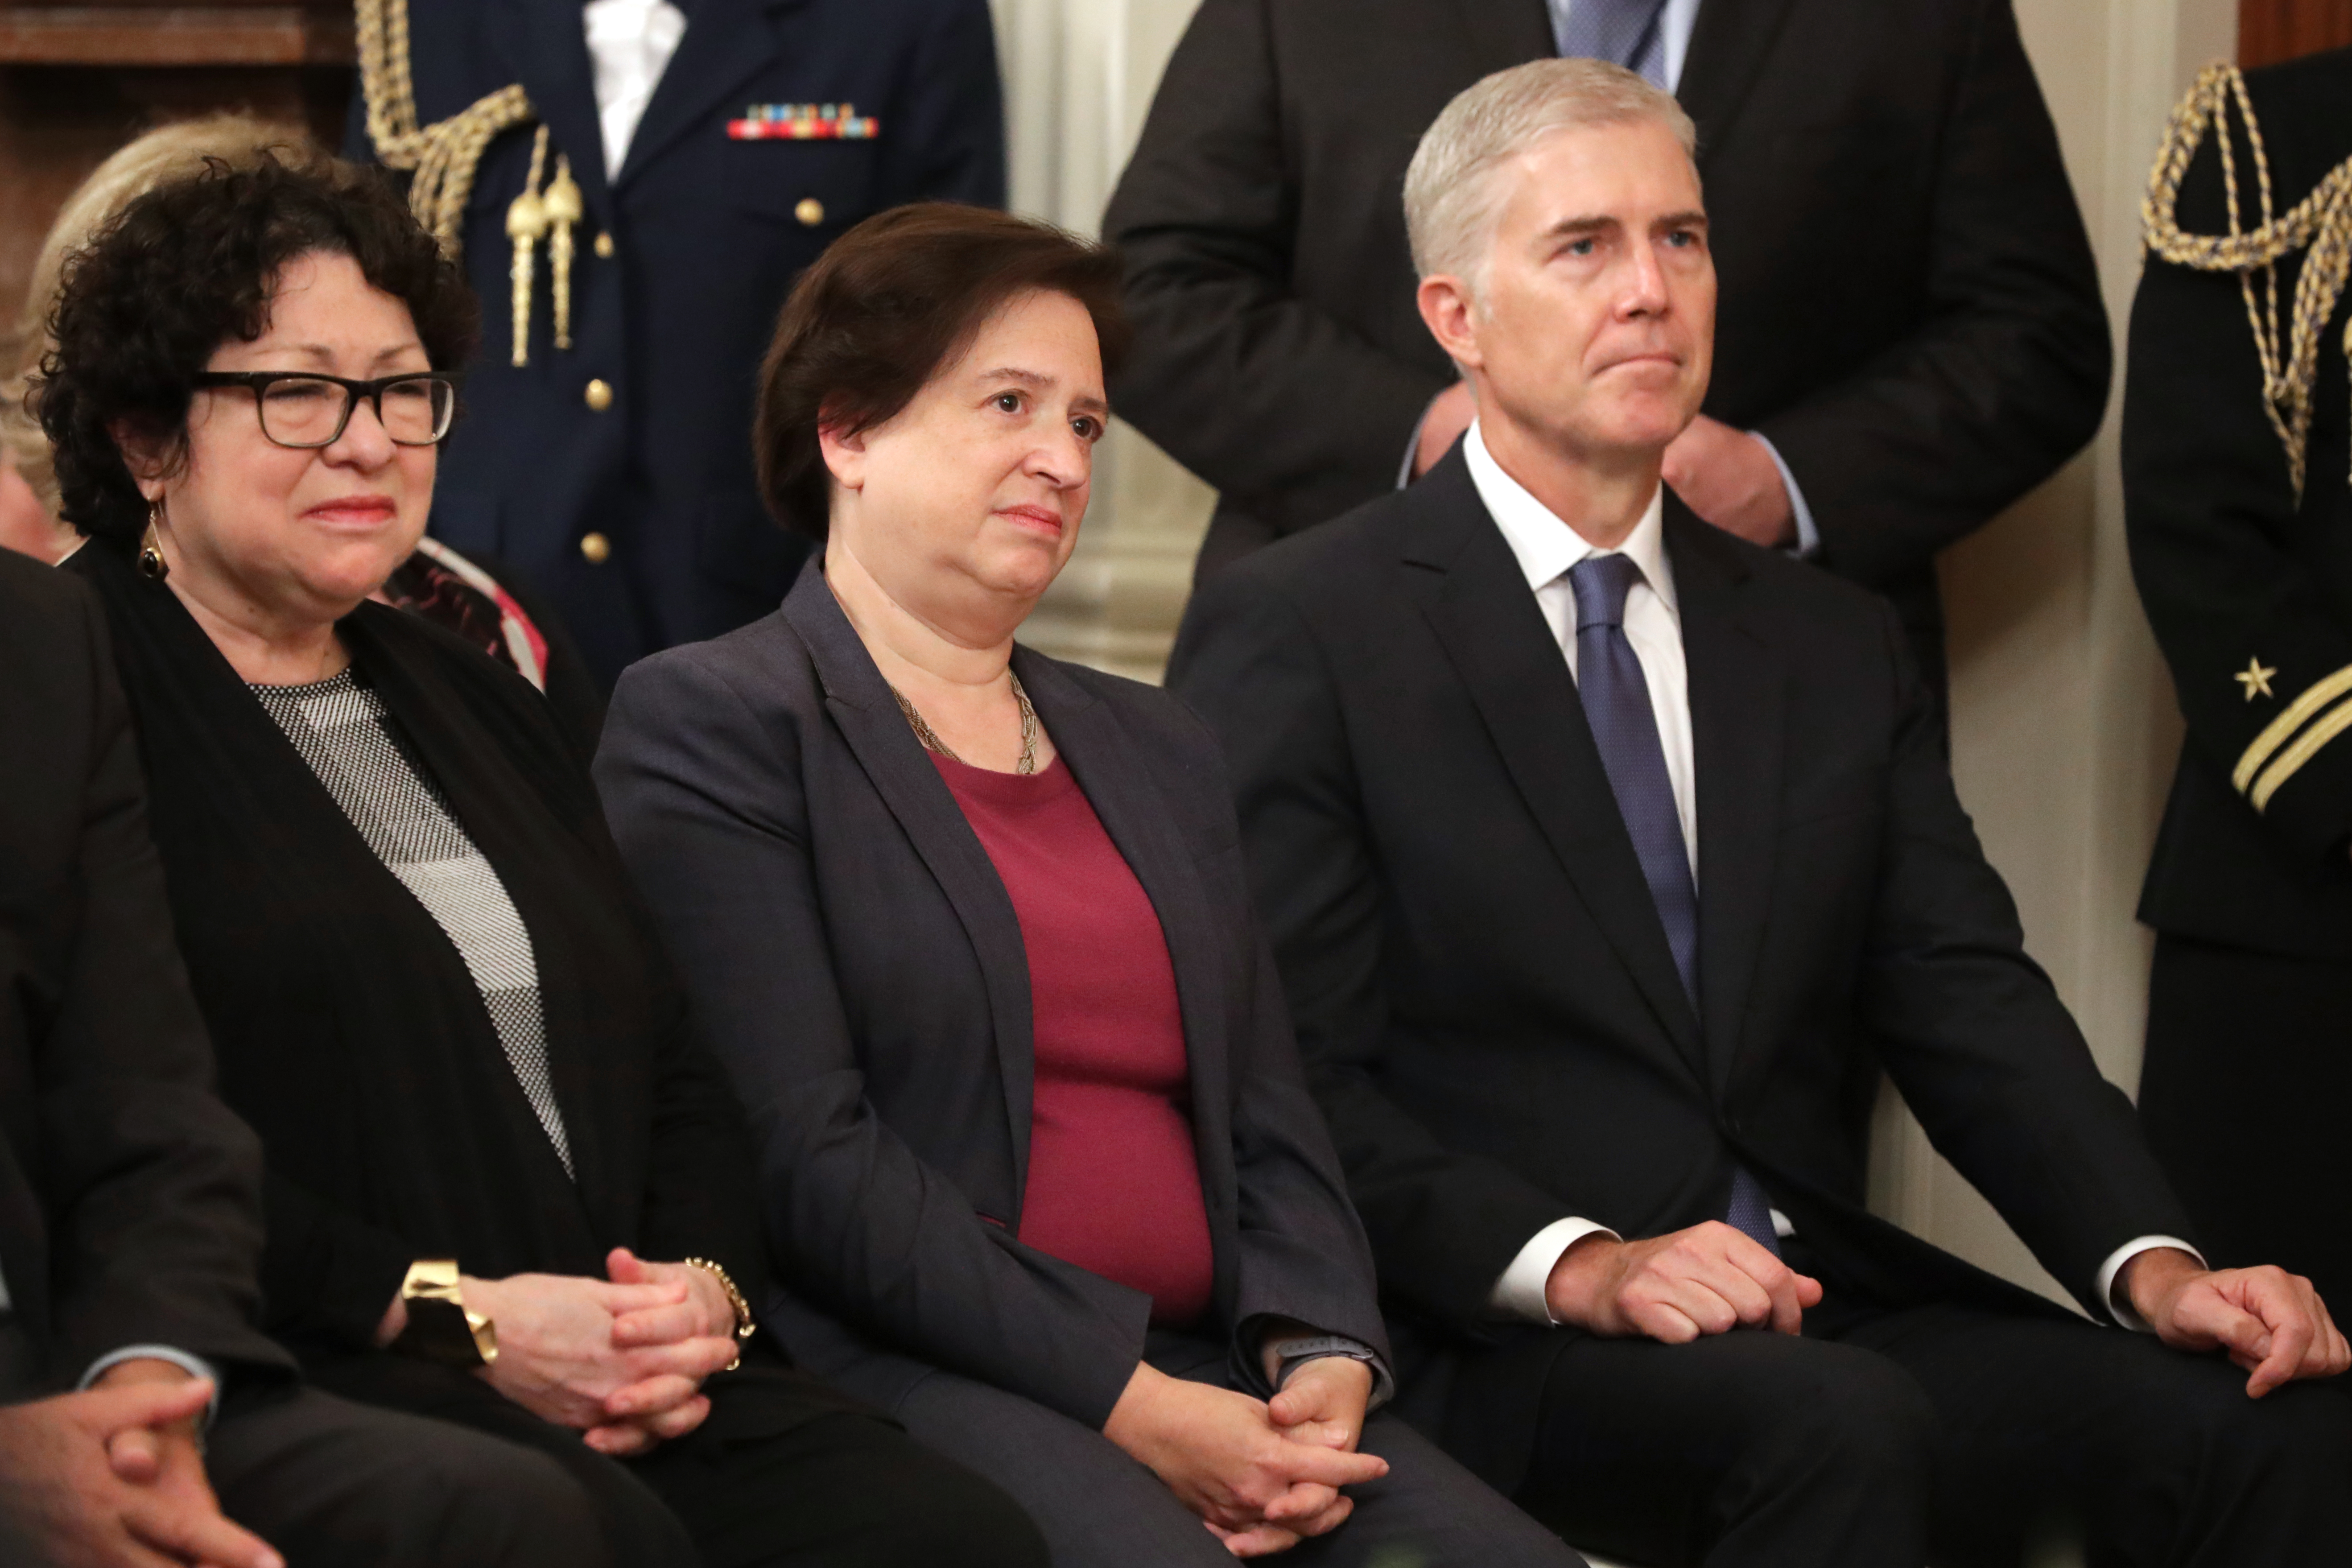 (R-L) Justices Neil Gorsuch, Elena Kagan, and Sonia Sotomayor in the East Room of the White House on October 08, 2018. (Chip Somodevilla/Getty Images)